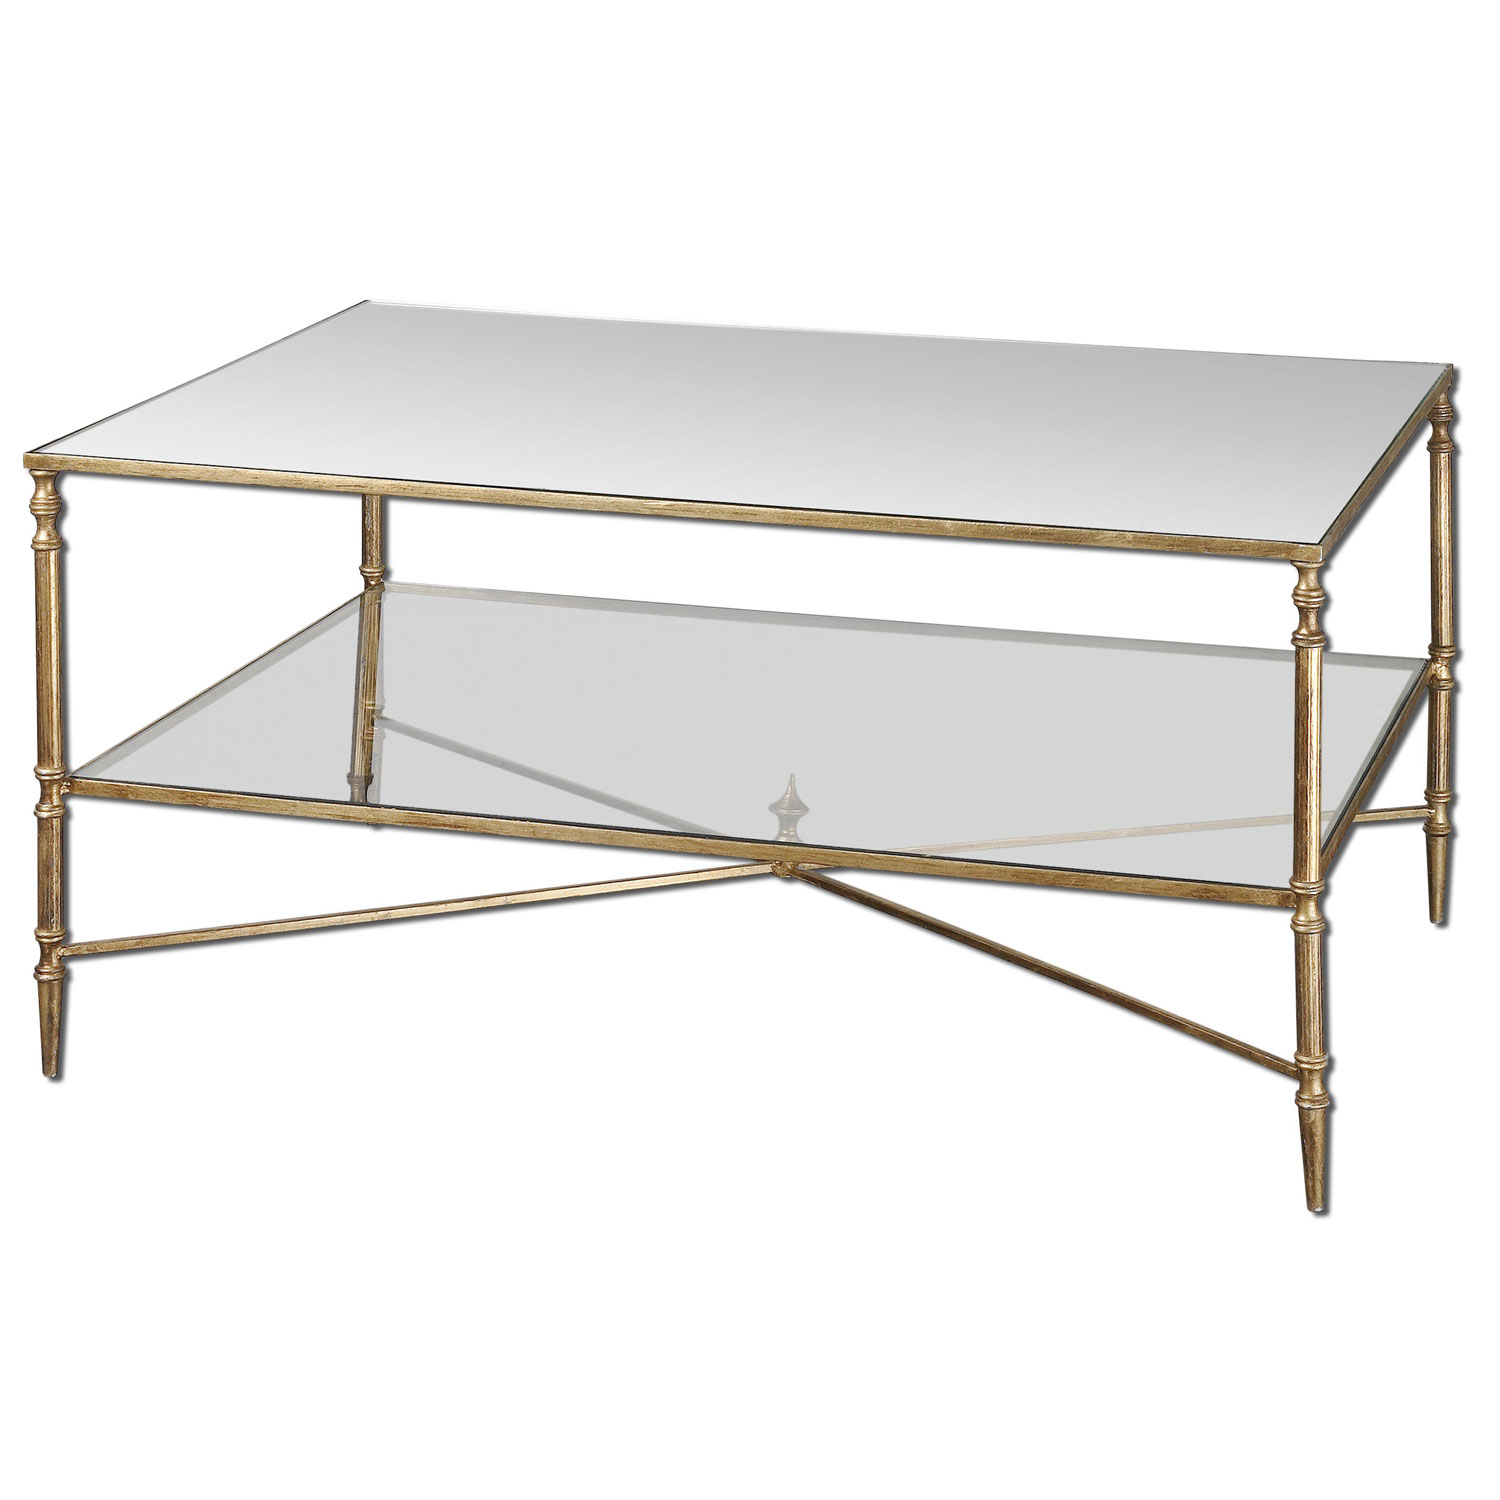 furniture clear glass coffee table uttermost gold henzler htm hover zoom and metal with base top legs acrylic round drawers large coloured tables white end full size small side